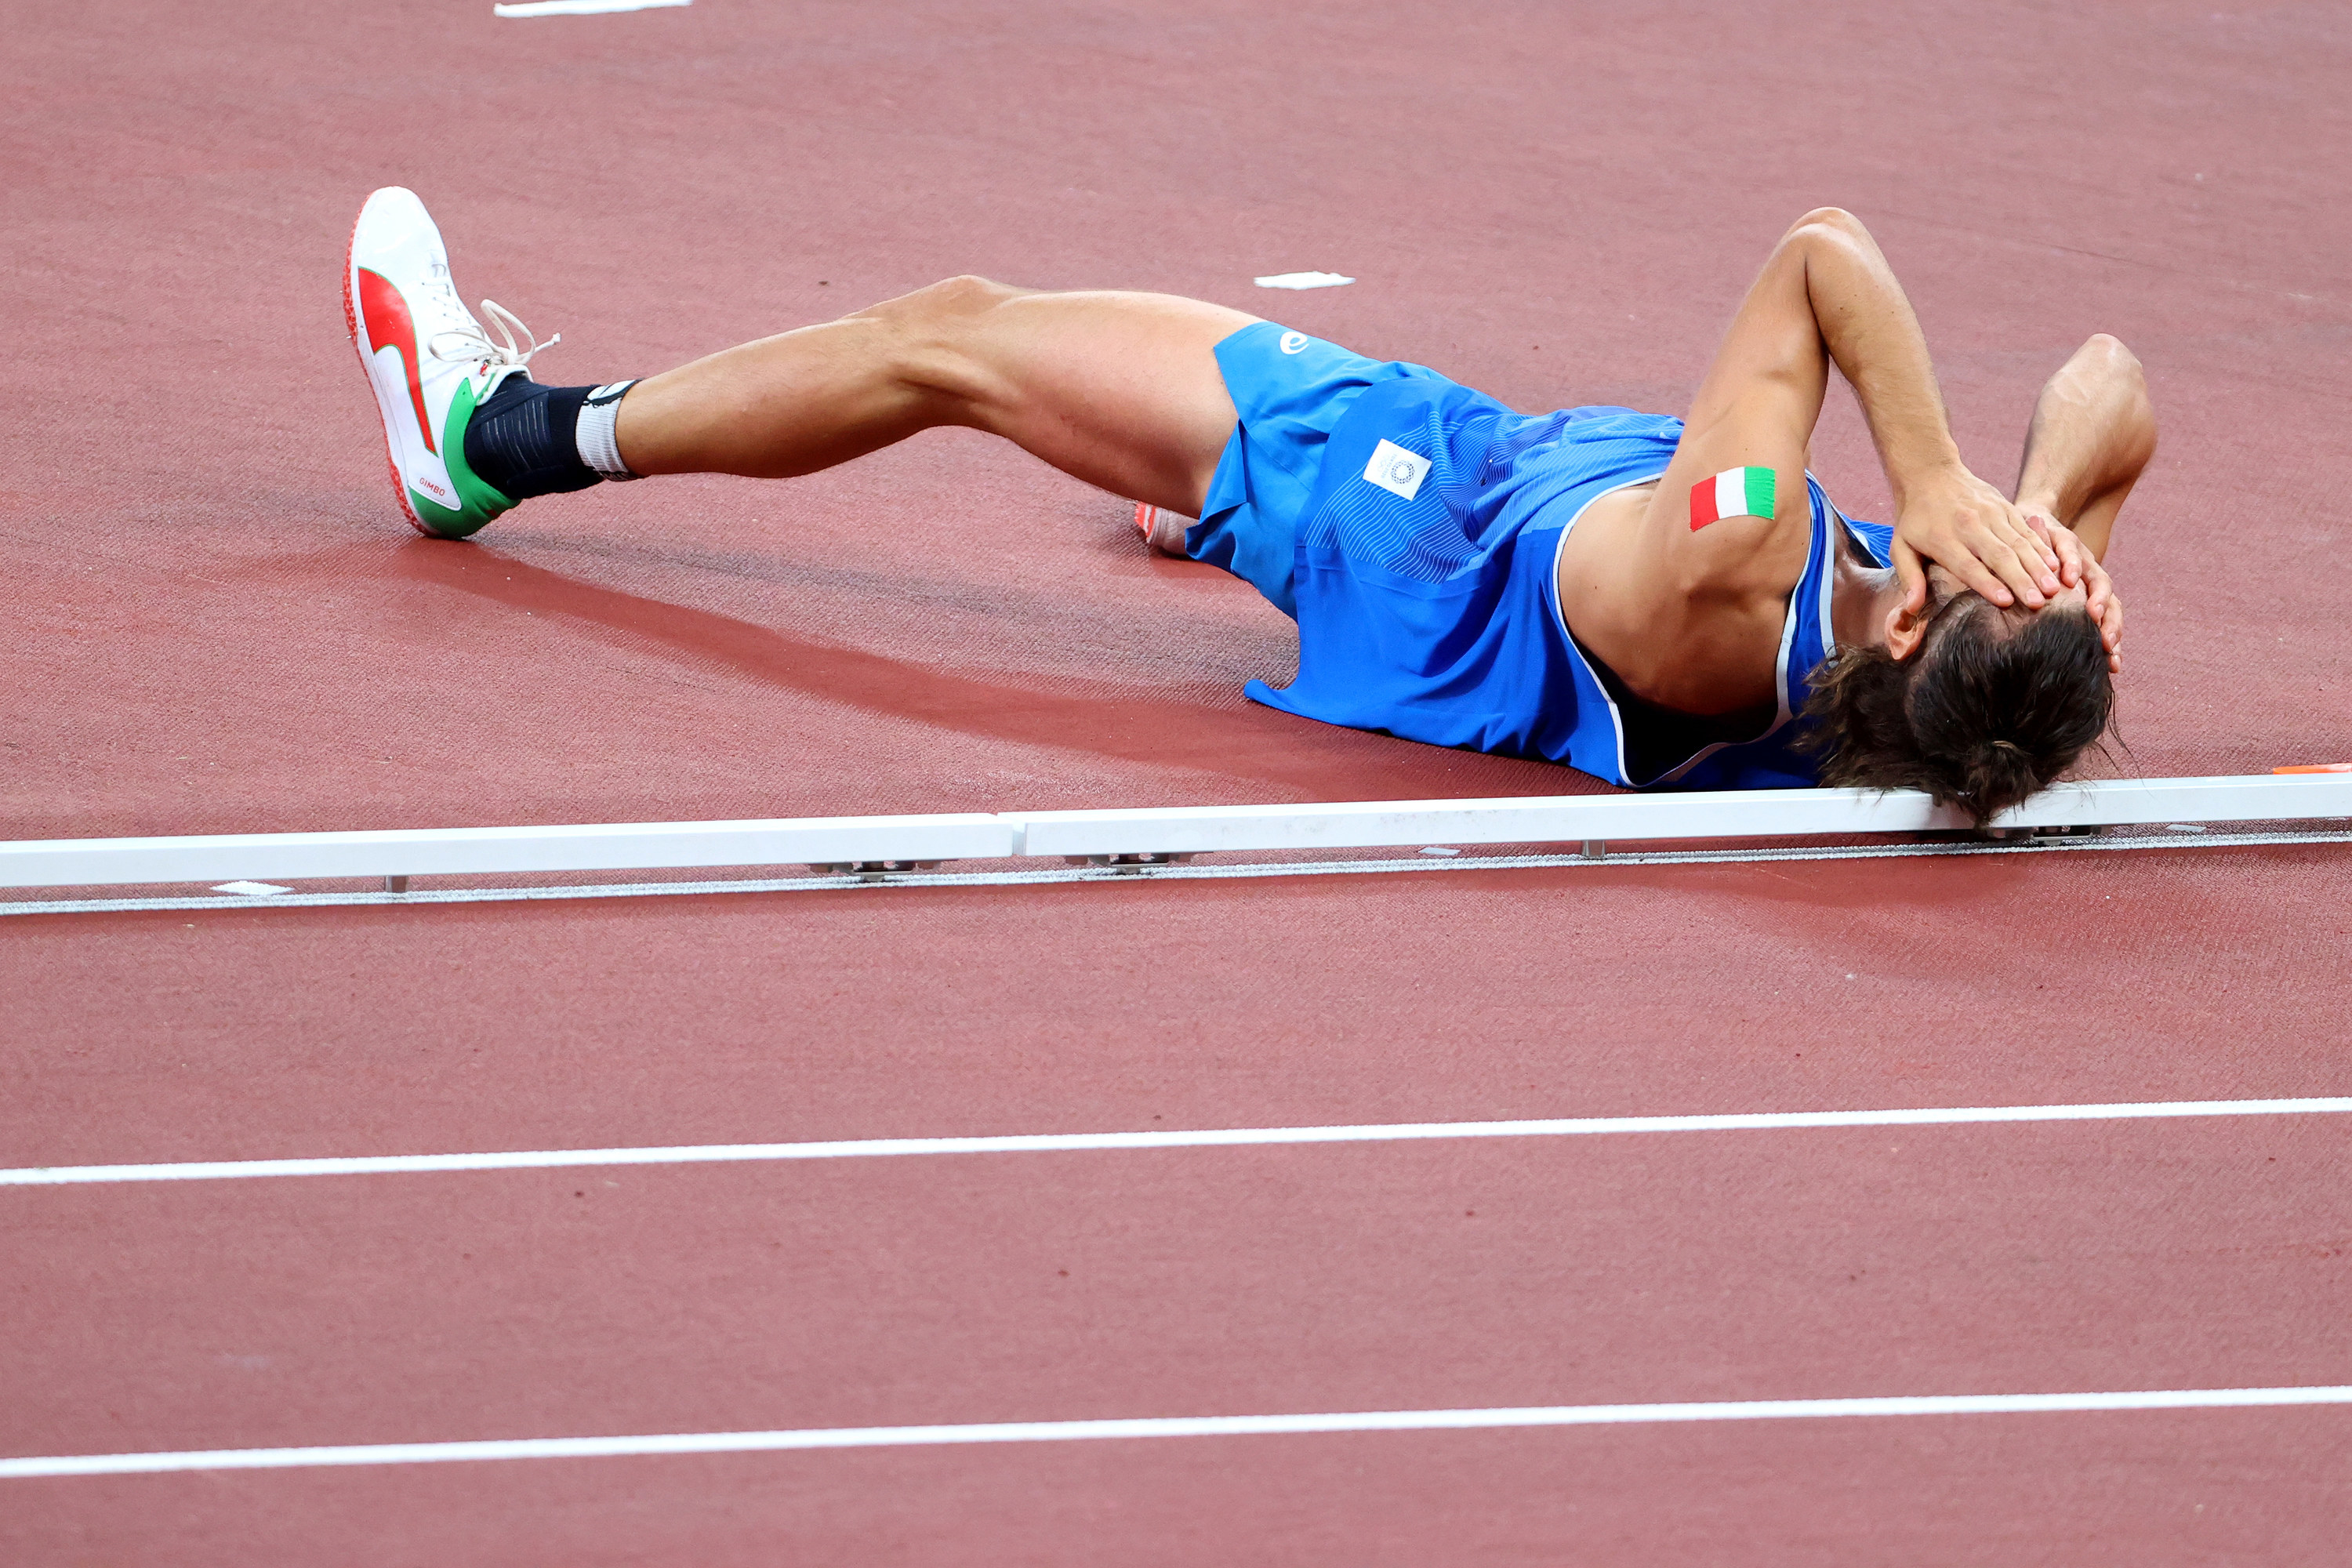 Tamberi lies on his back on the track and covers his eyes with his hands